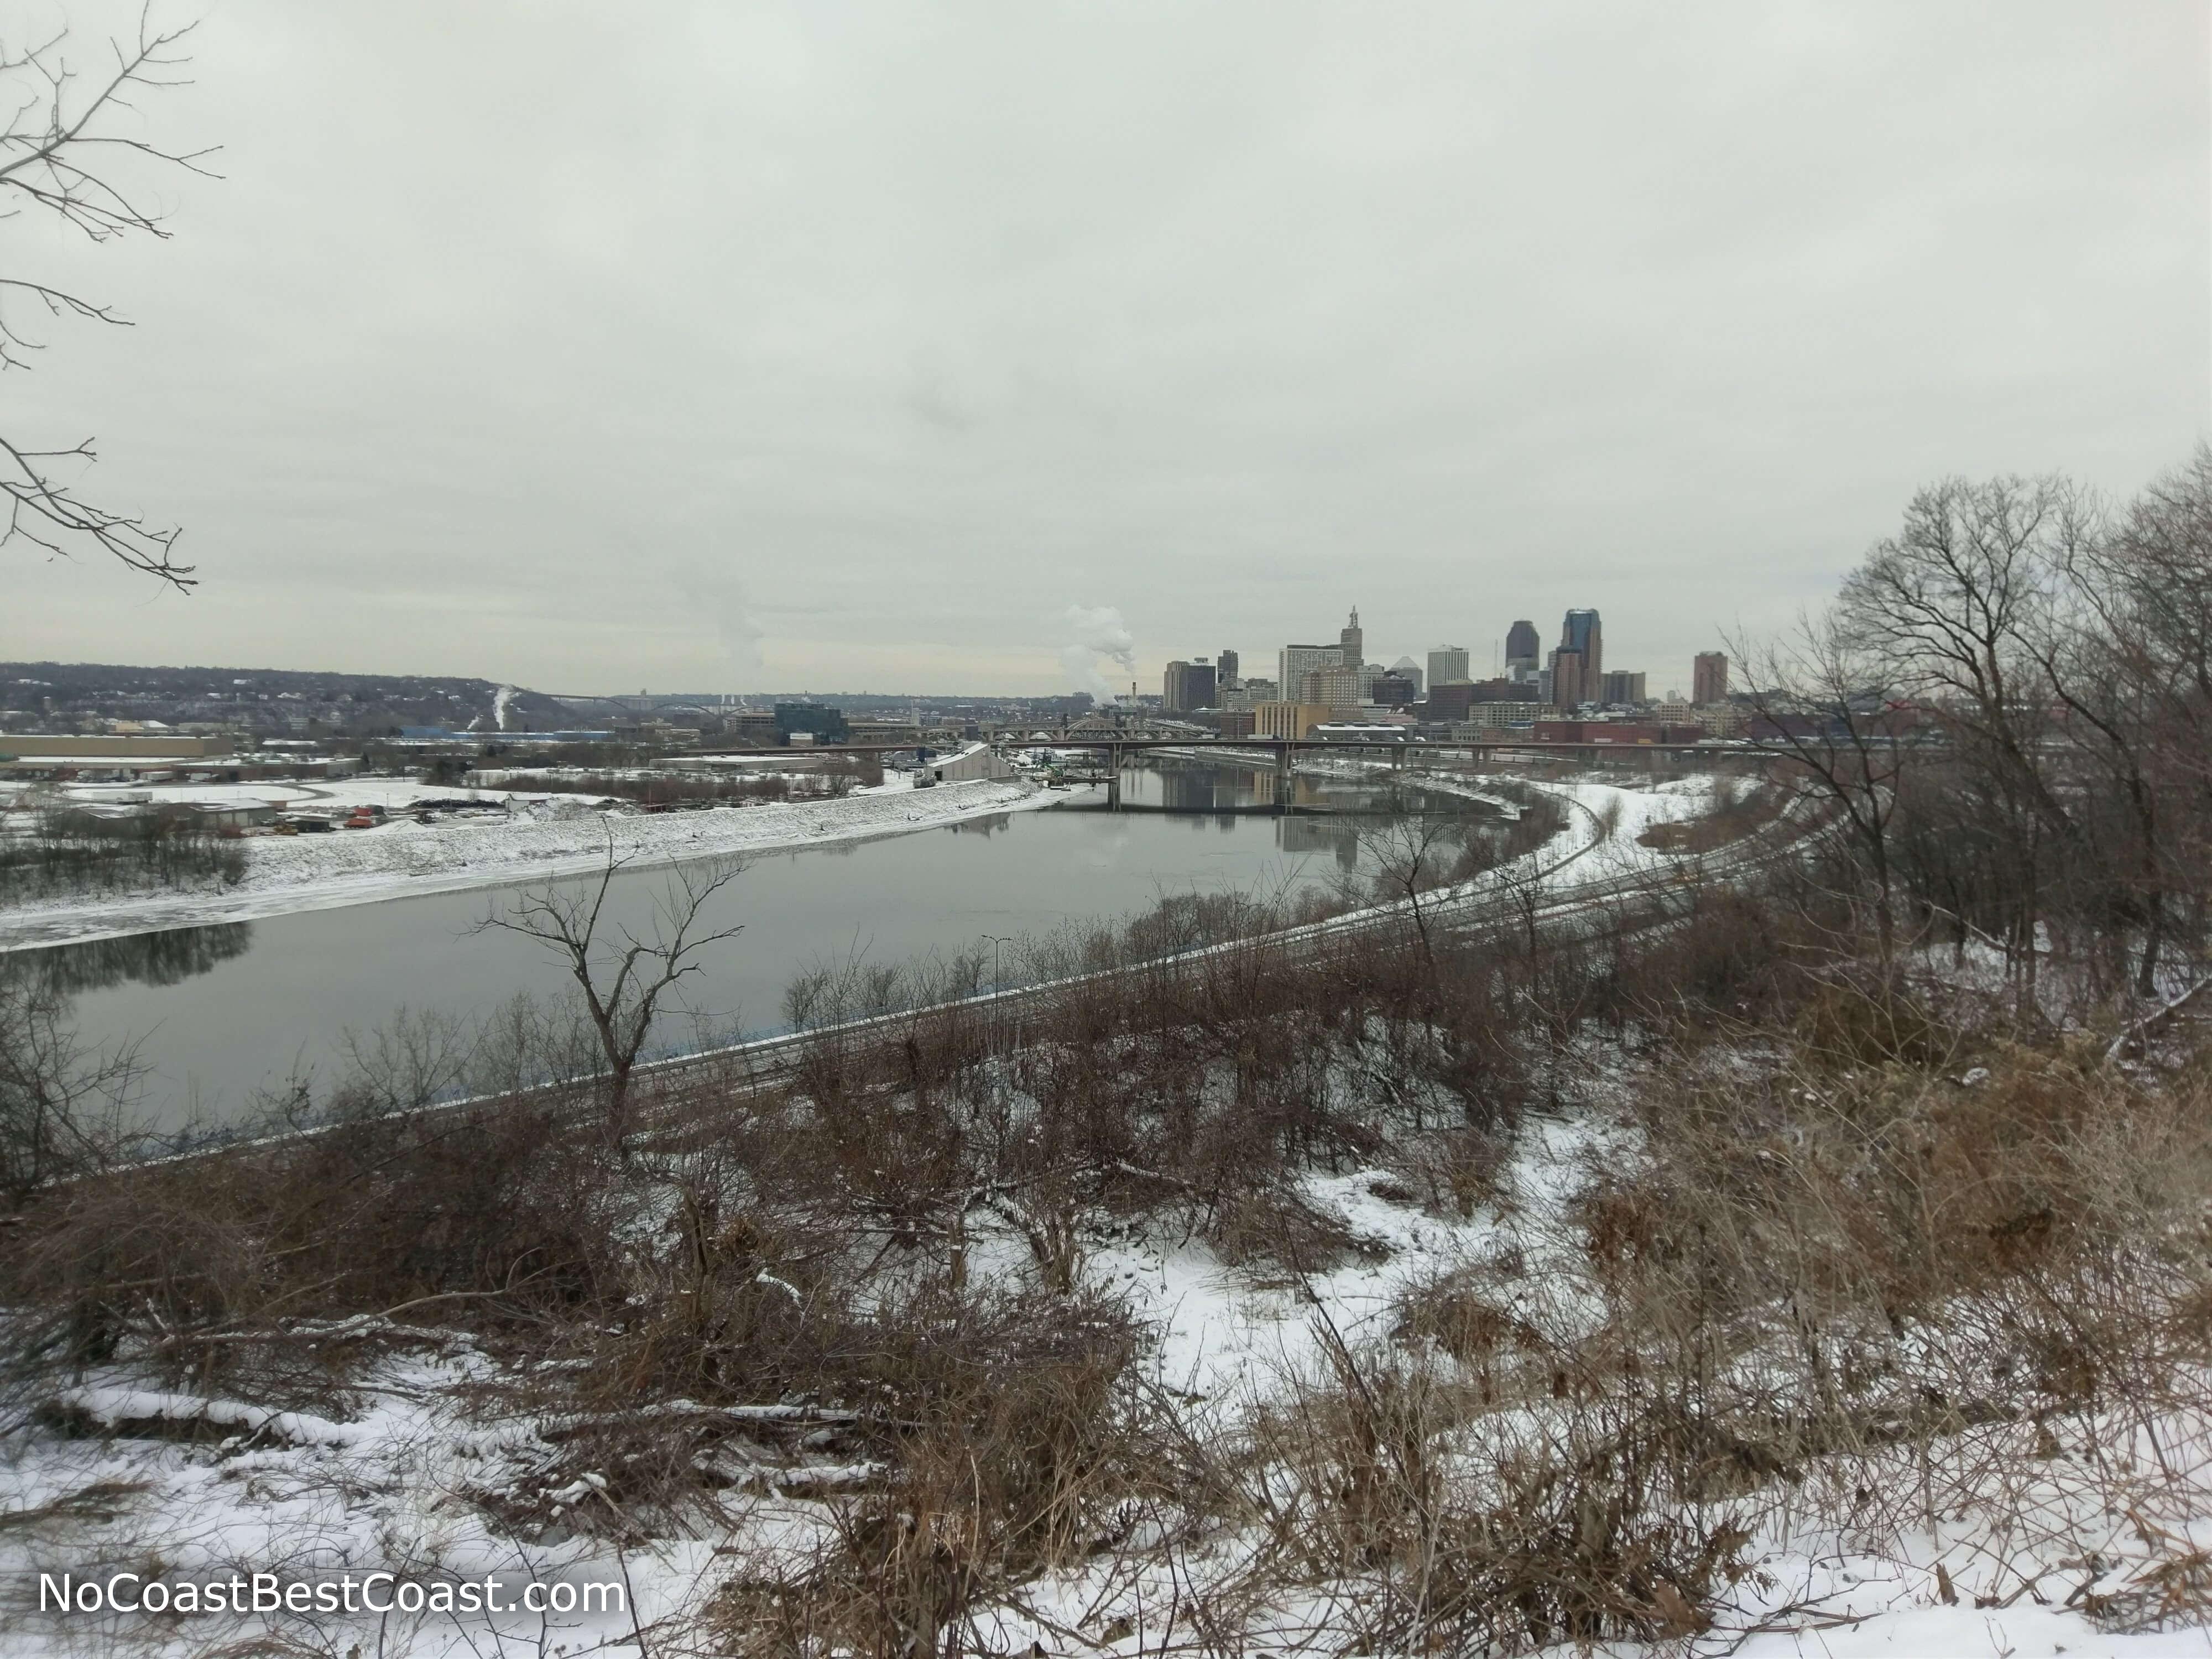 You can't beat this view of Downtown St. Paul